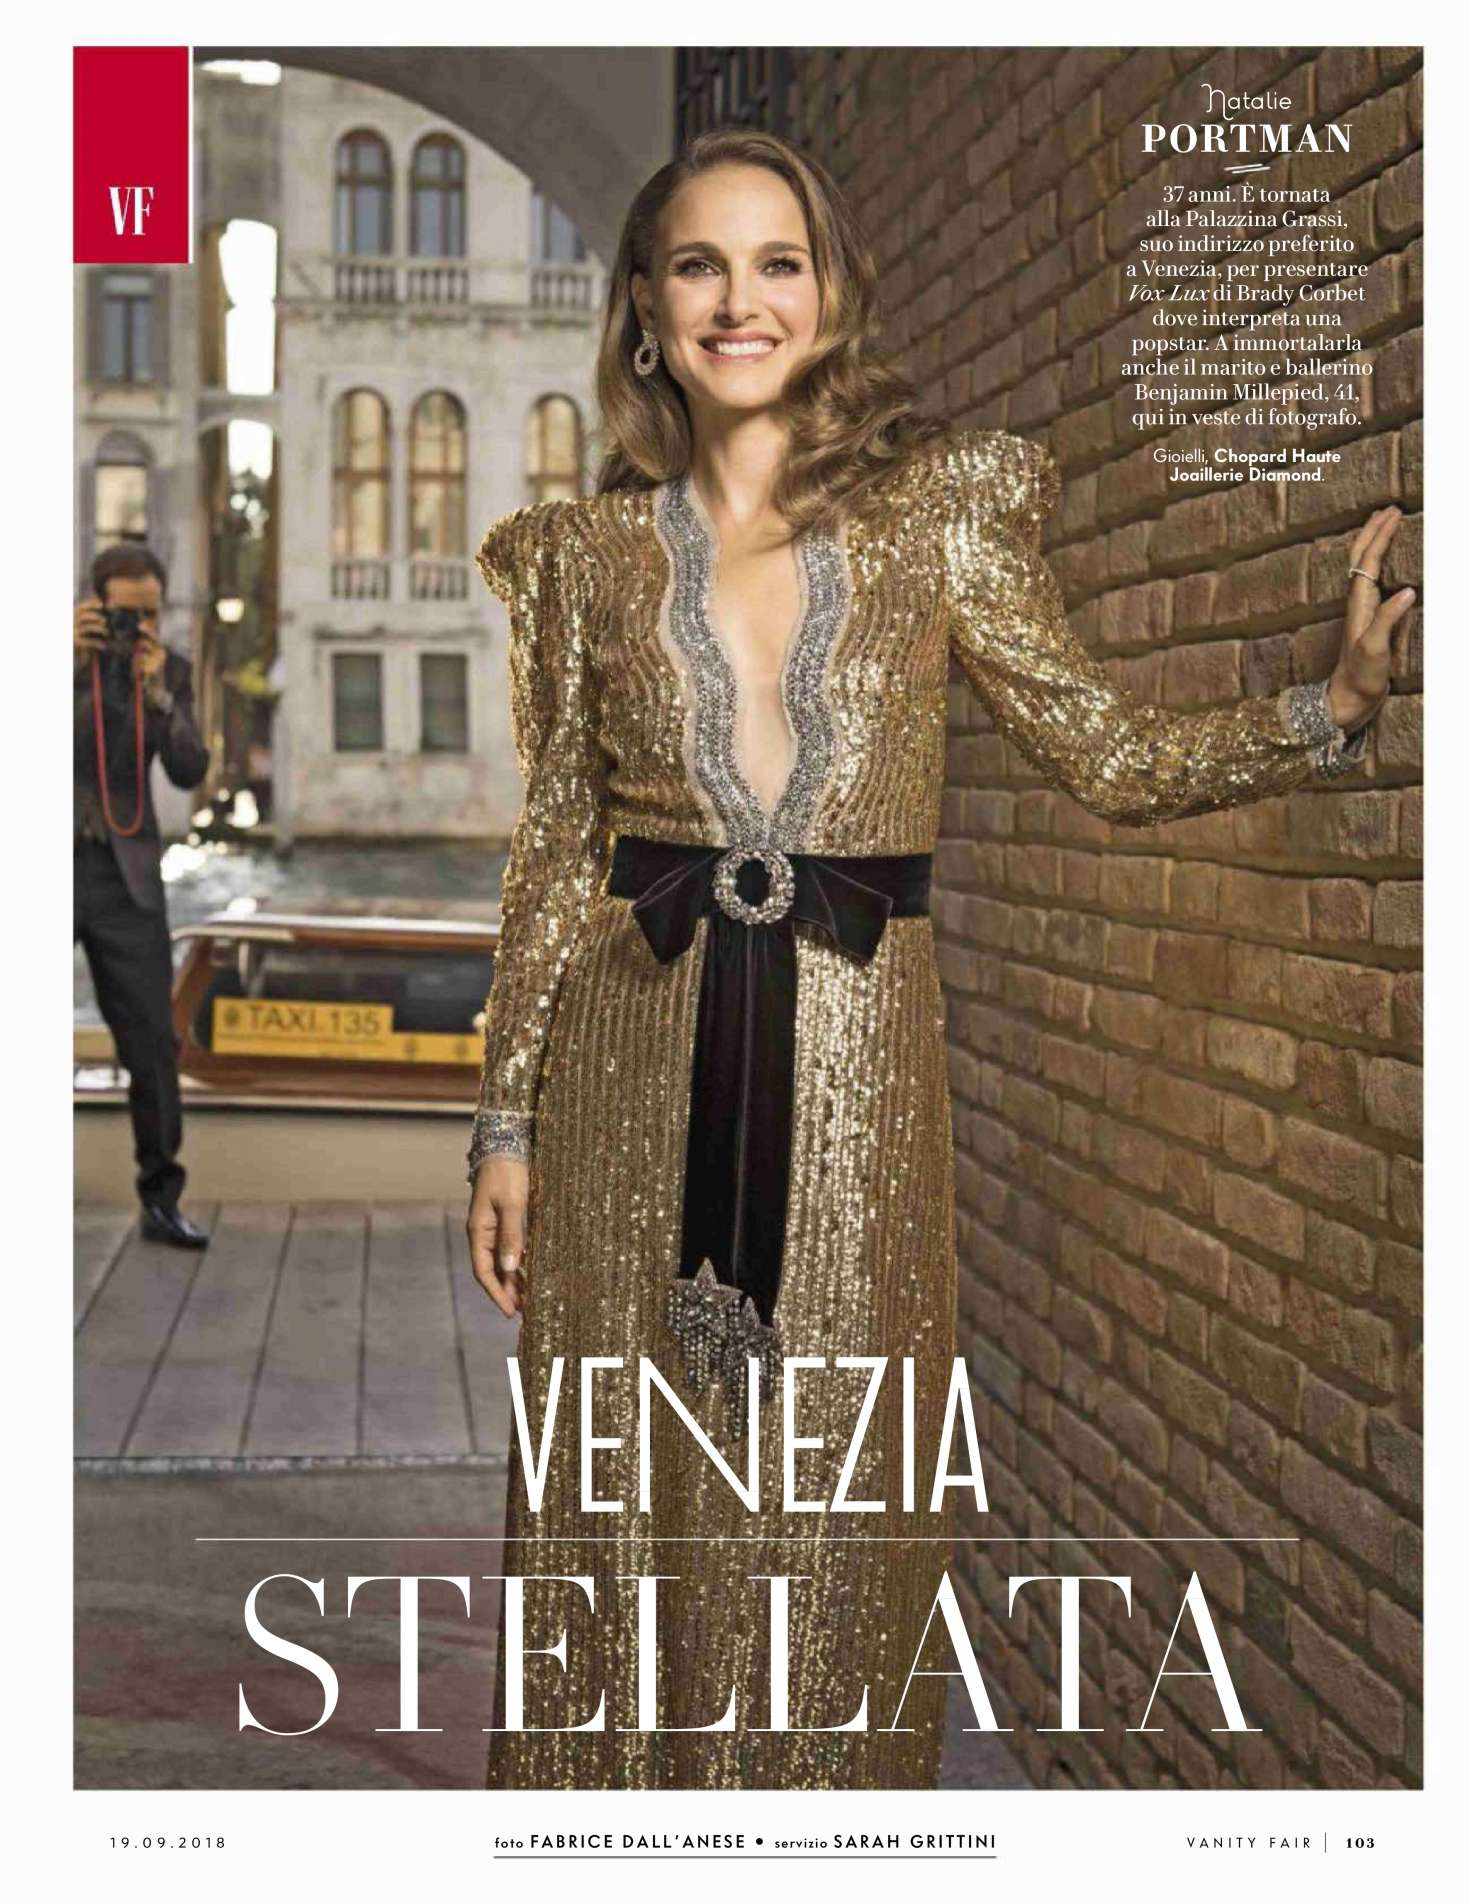 Natalie Portman for Vanity Fair Italy Magazine (September 2018)